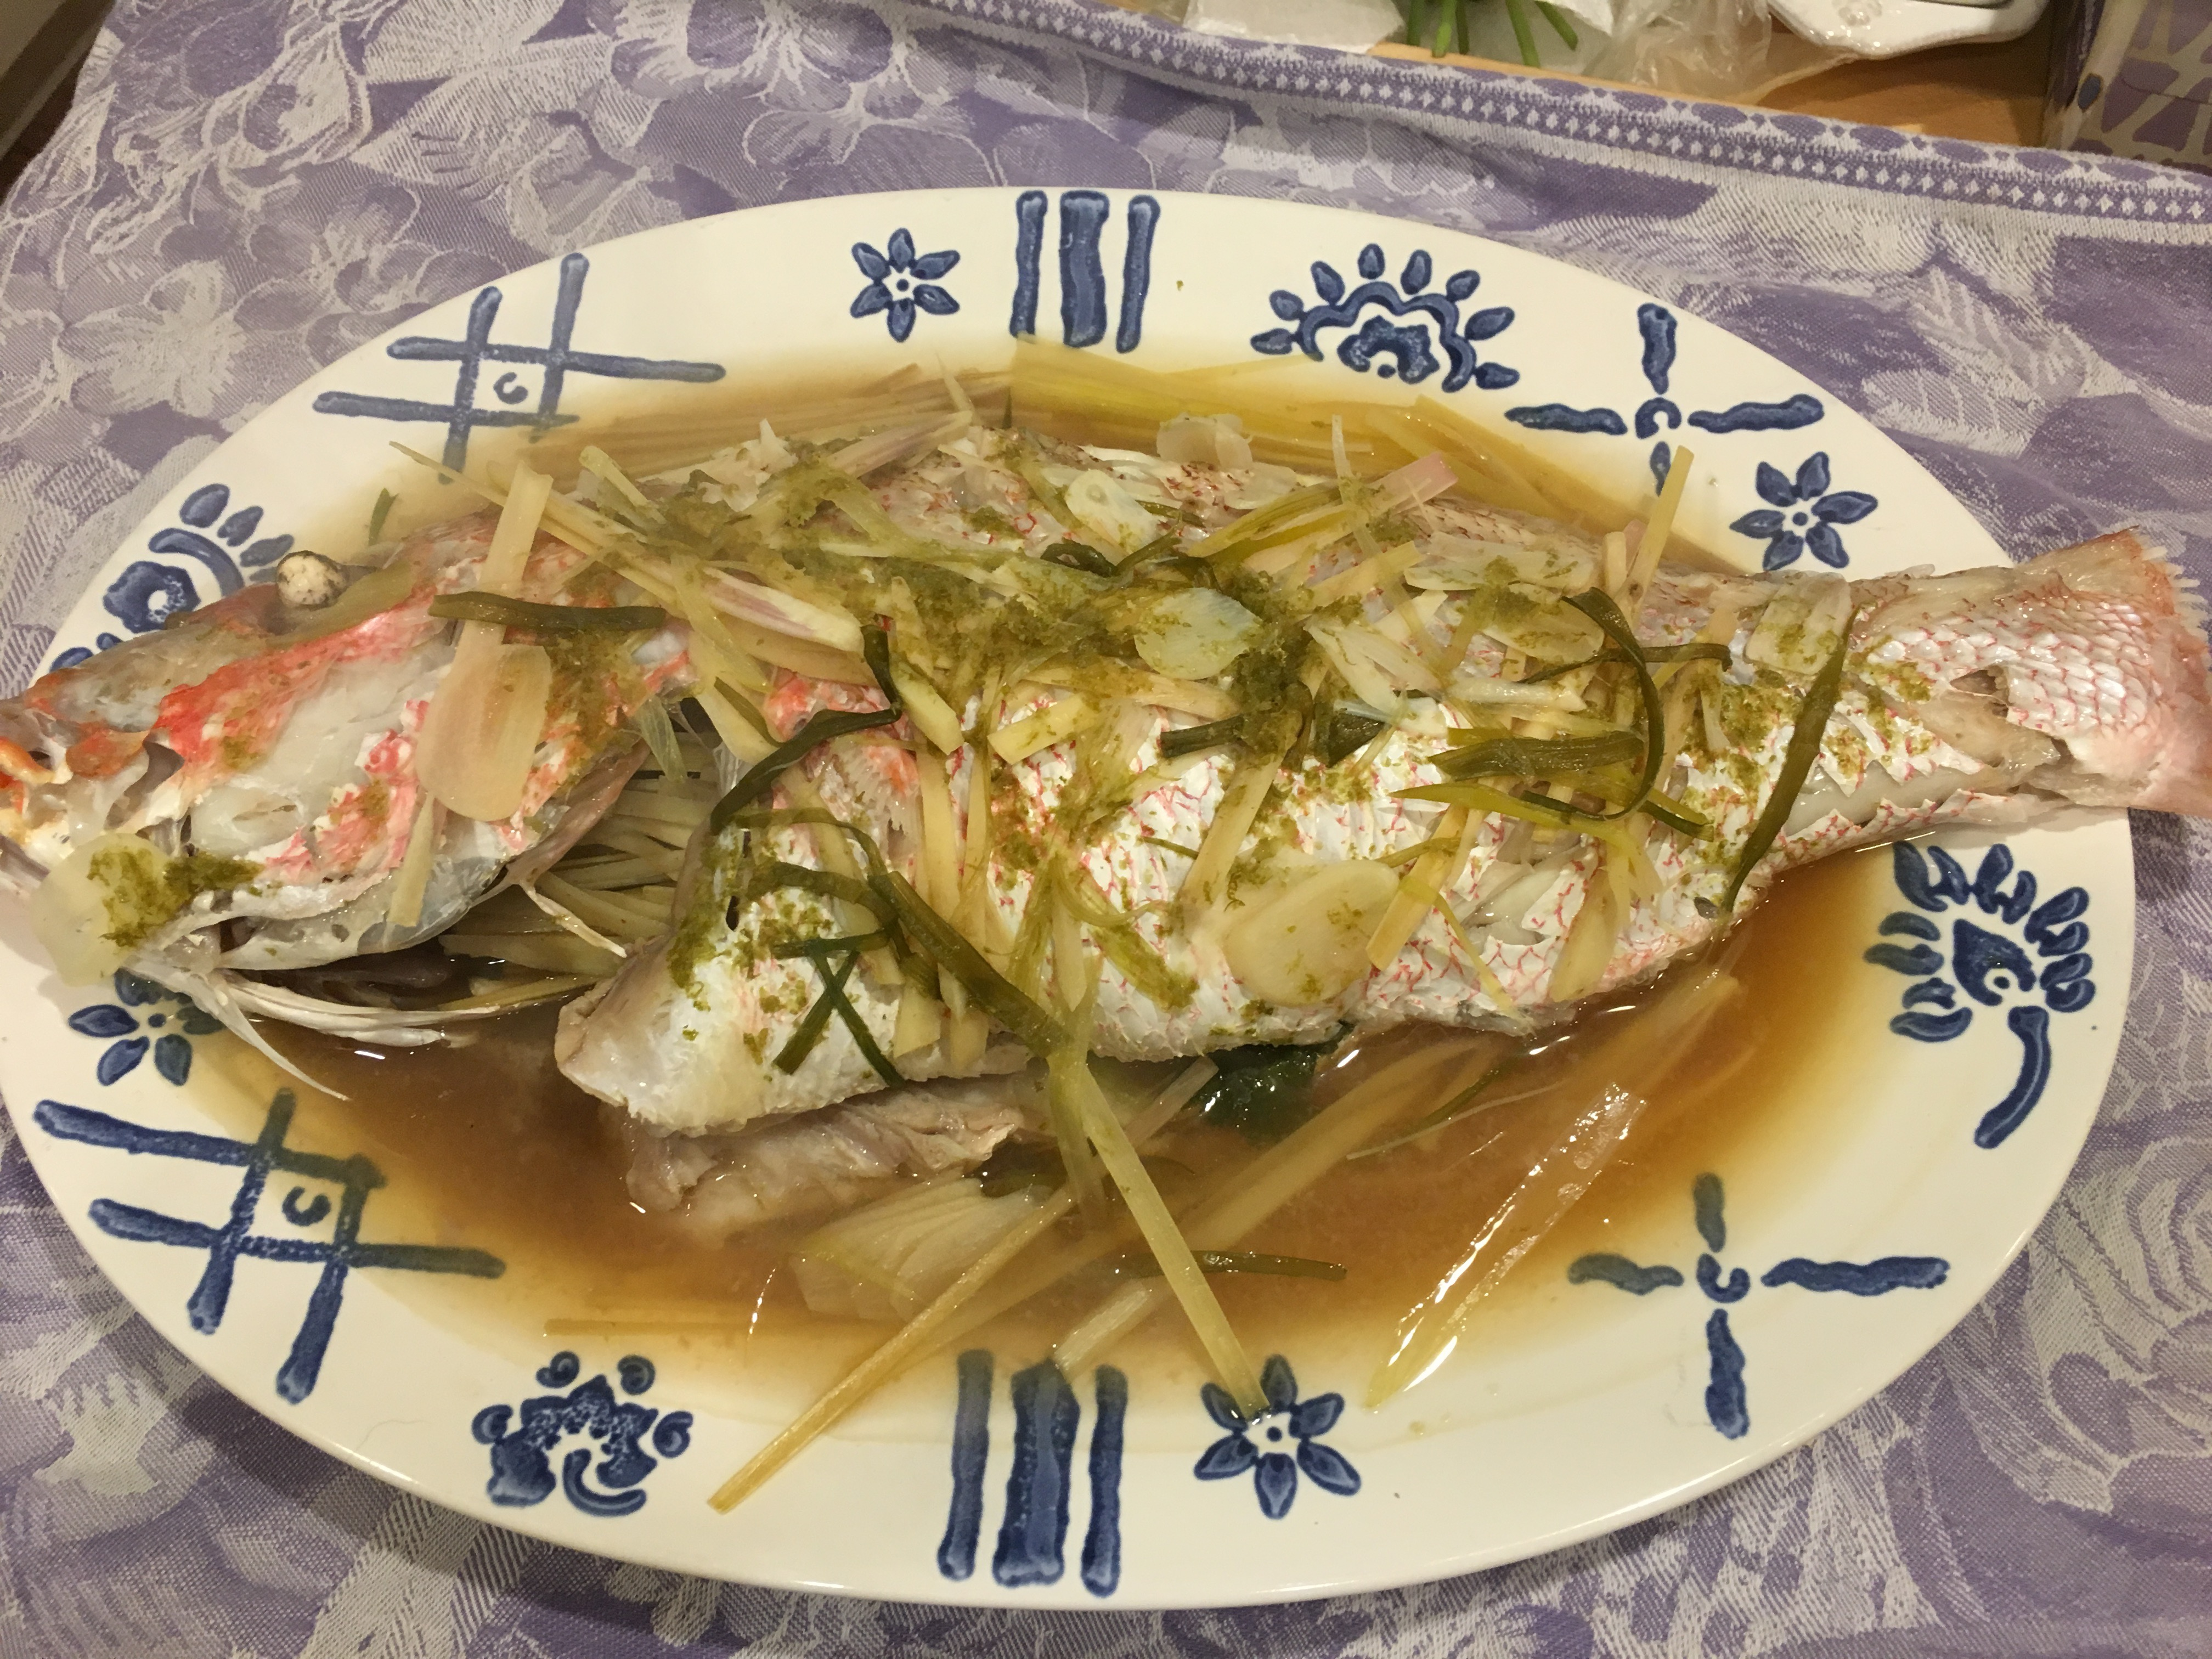 Steamed whole fish going lo co for Steamed whole fish